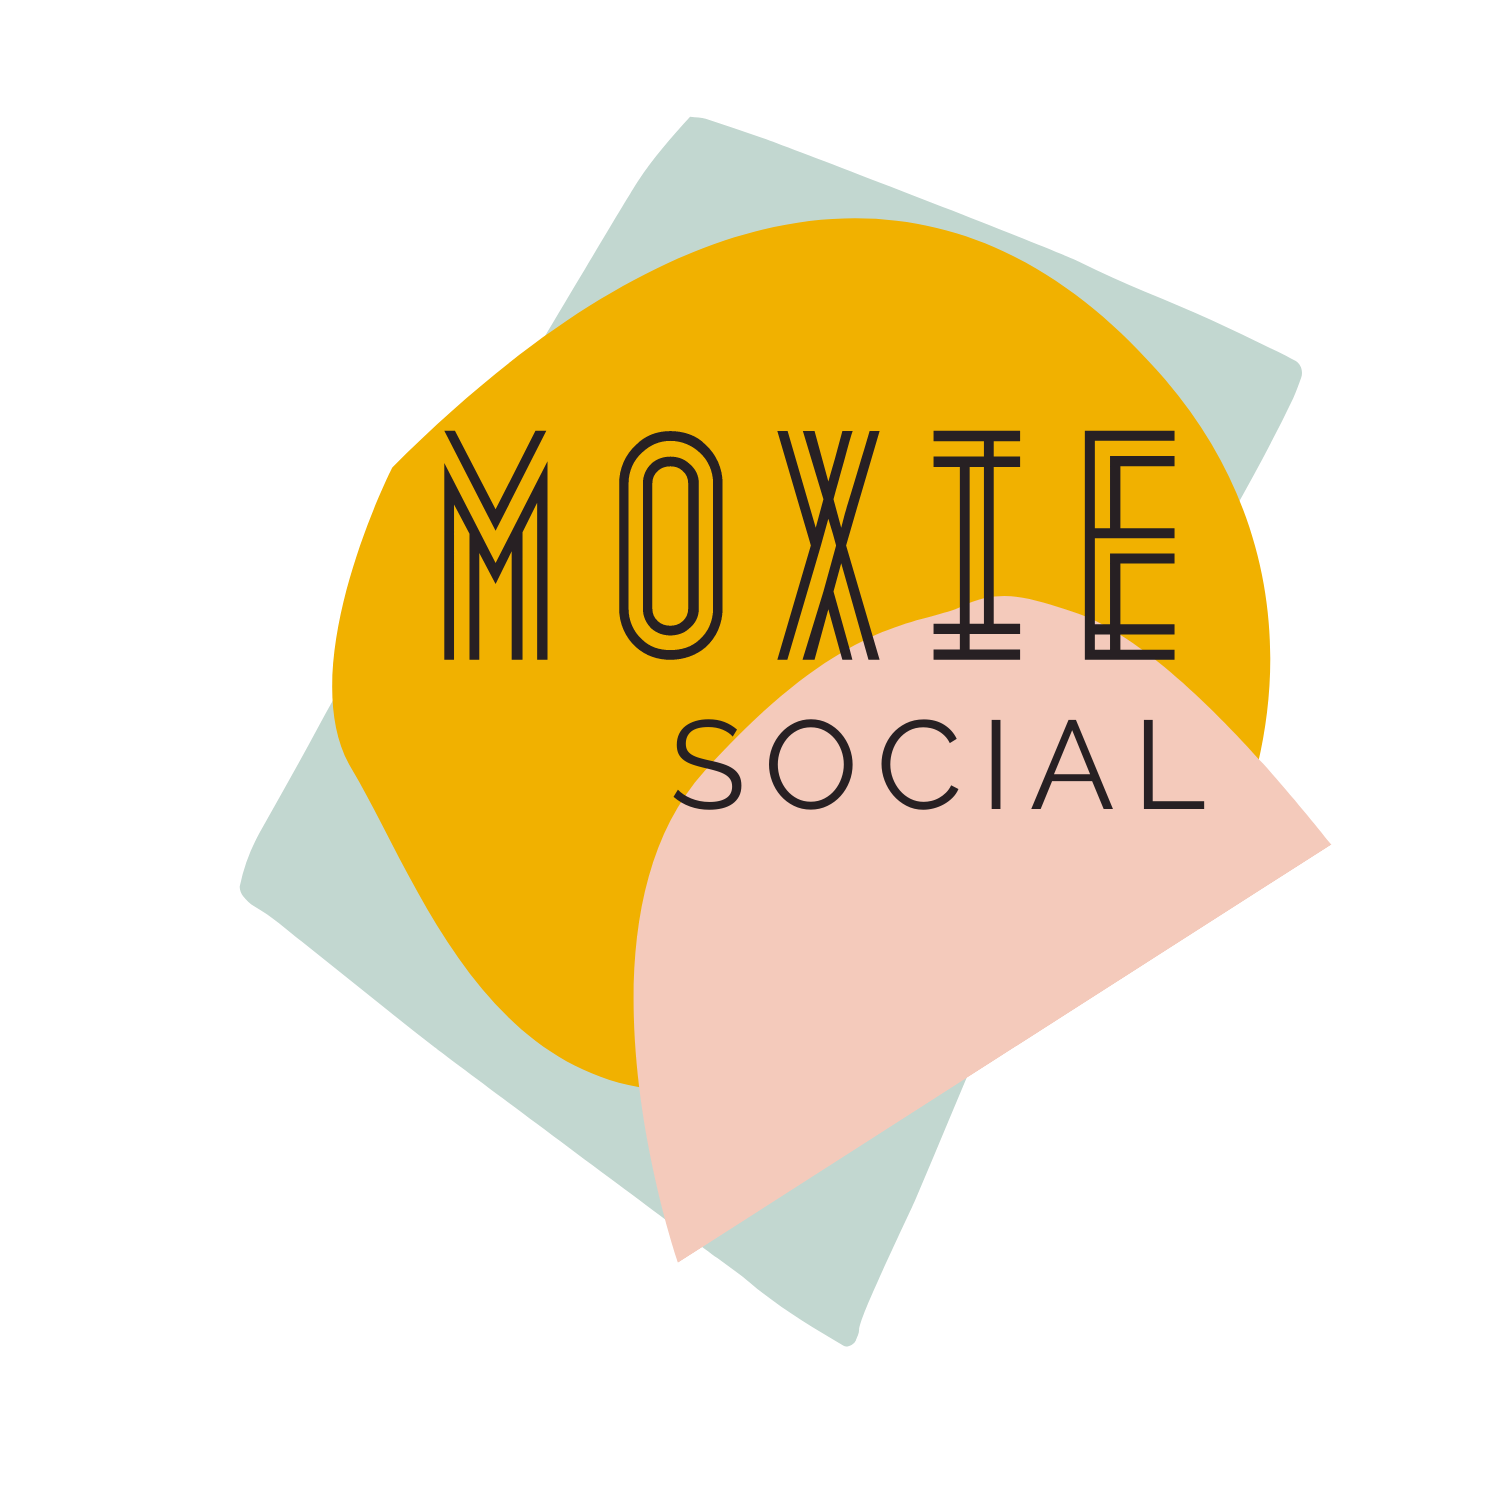 Moxie Social logo: a wordmark on cream, yellow, and teal colored blocks